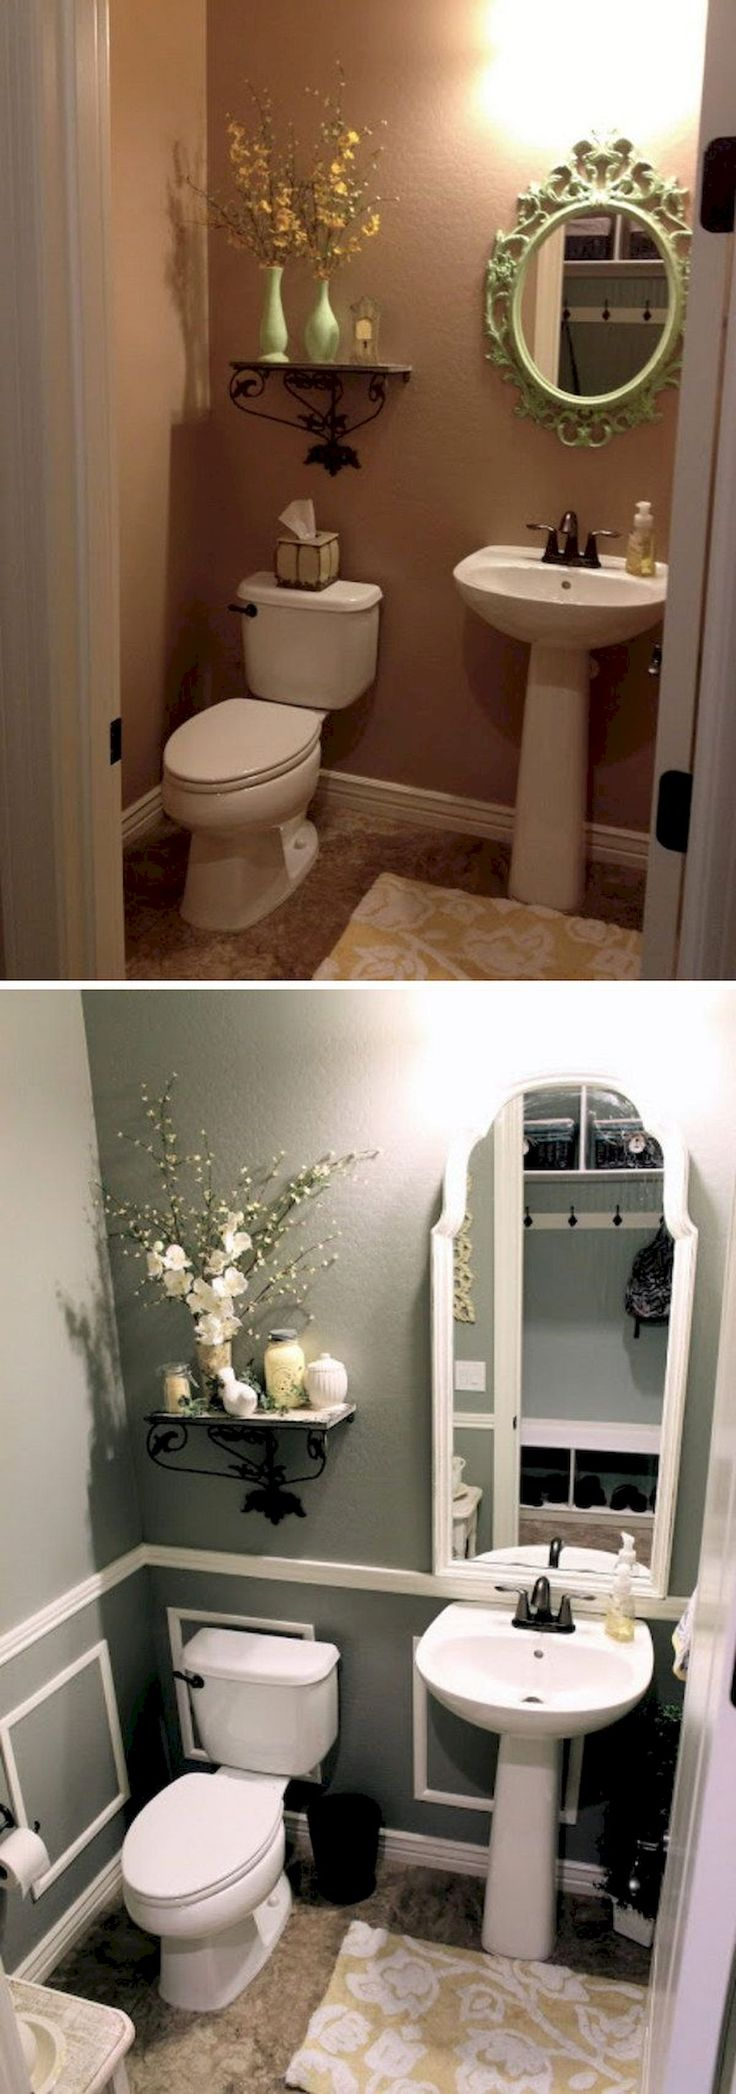 Best 25 inexpensive bathroom remodel ideas on pinterest for Remodeling bathroom ideas on a budget